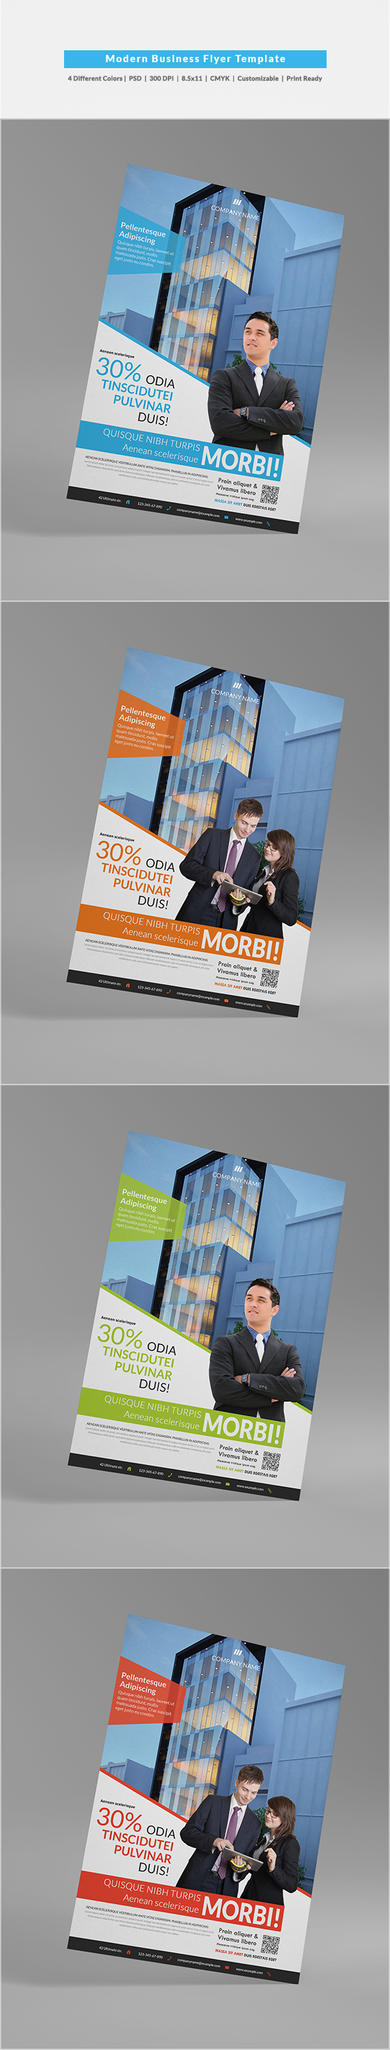 Modern Business Flyer Template by shapshapy